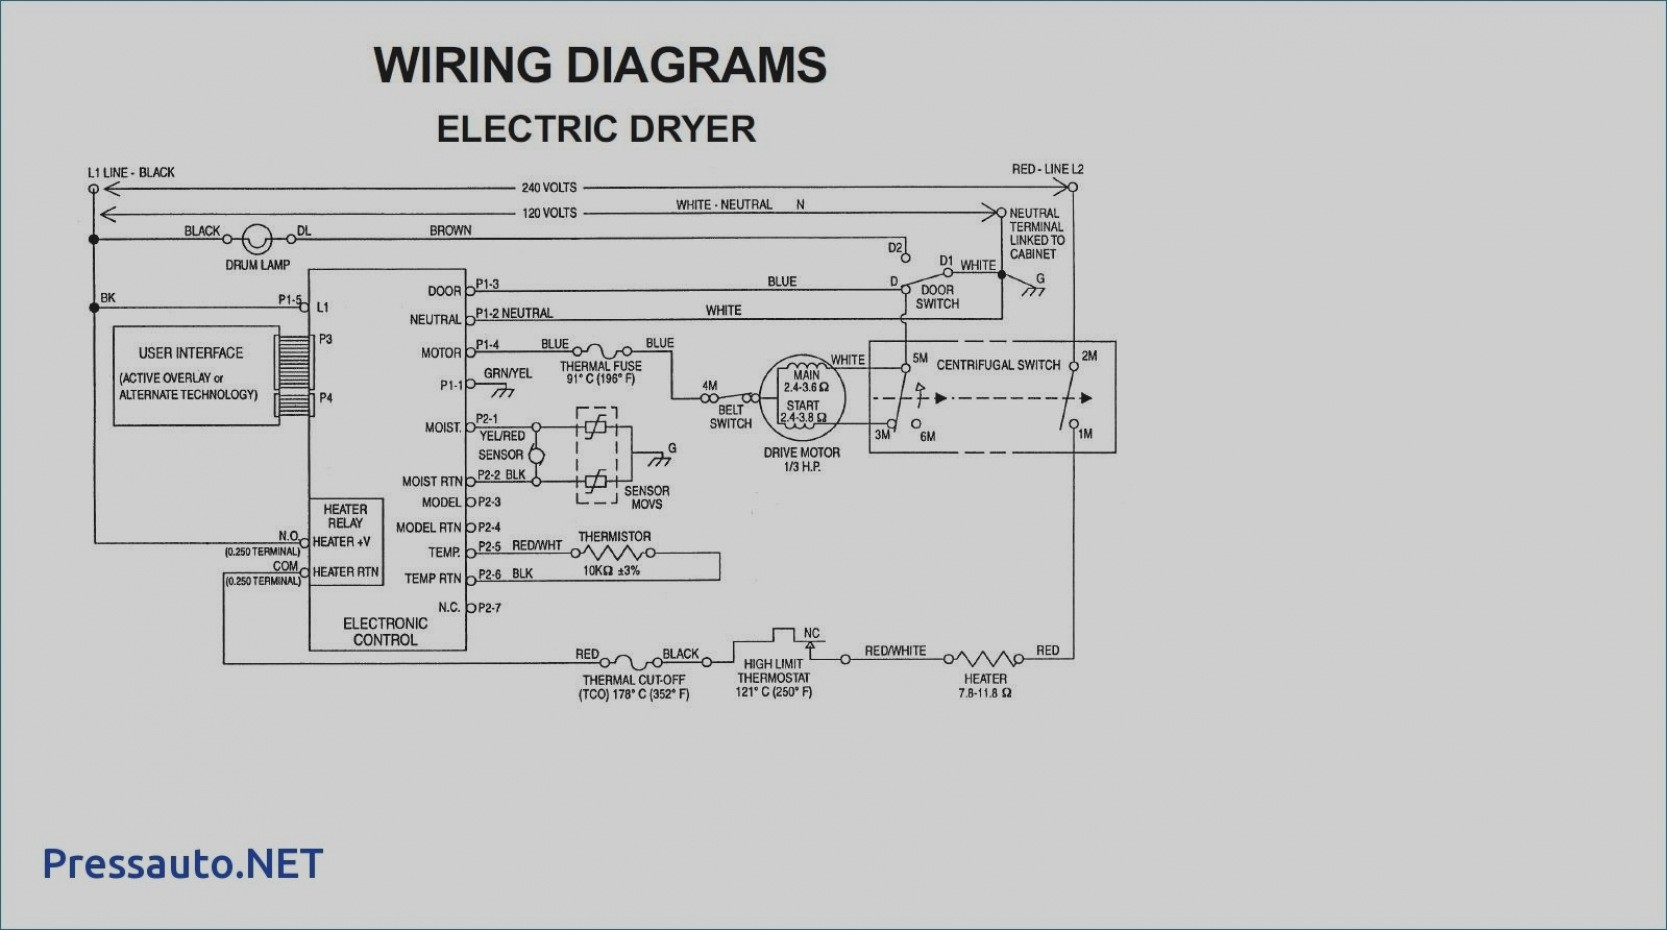 Trend Whirlpool Dryer Wiring Diagram Troubleshoot Image Collections Free For Estate